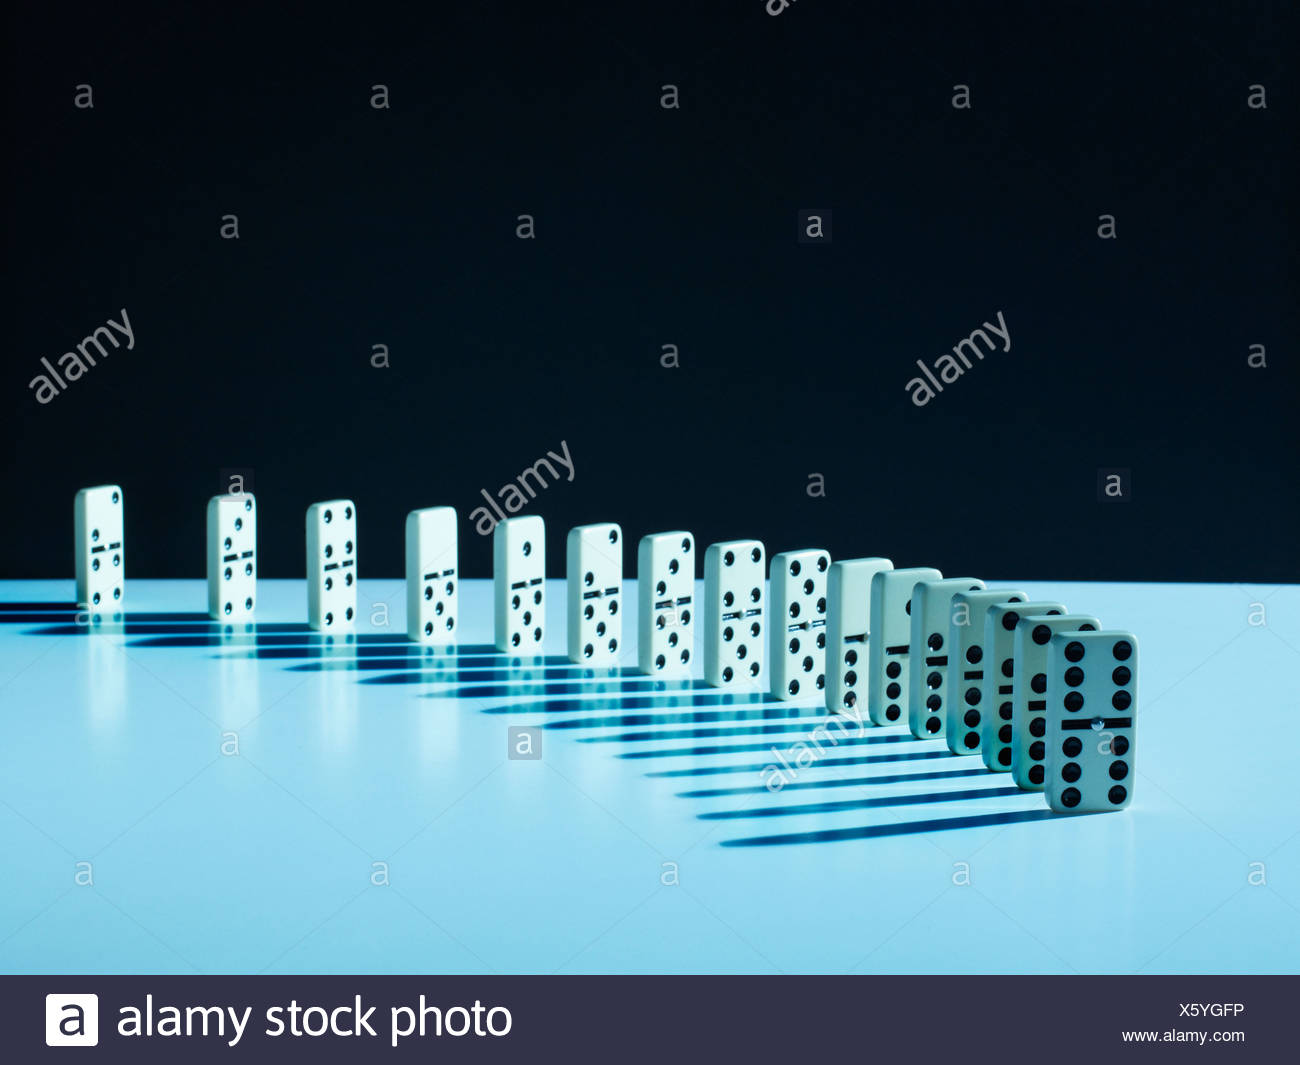 Dominos standing in a row Photo Stock